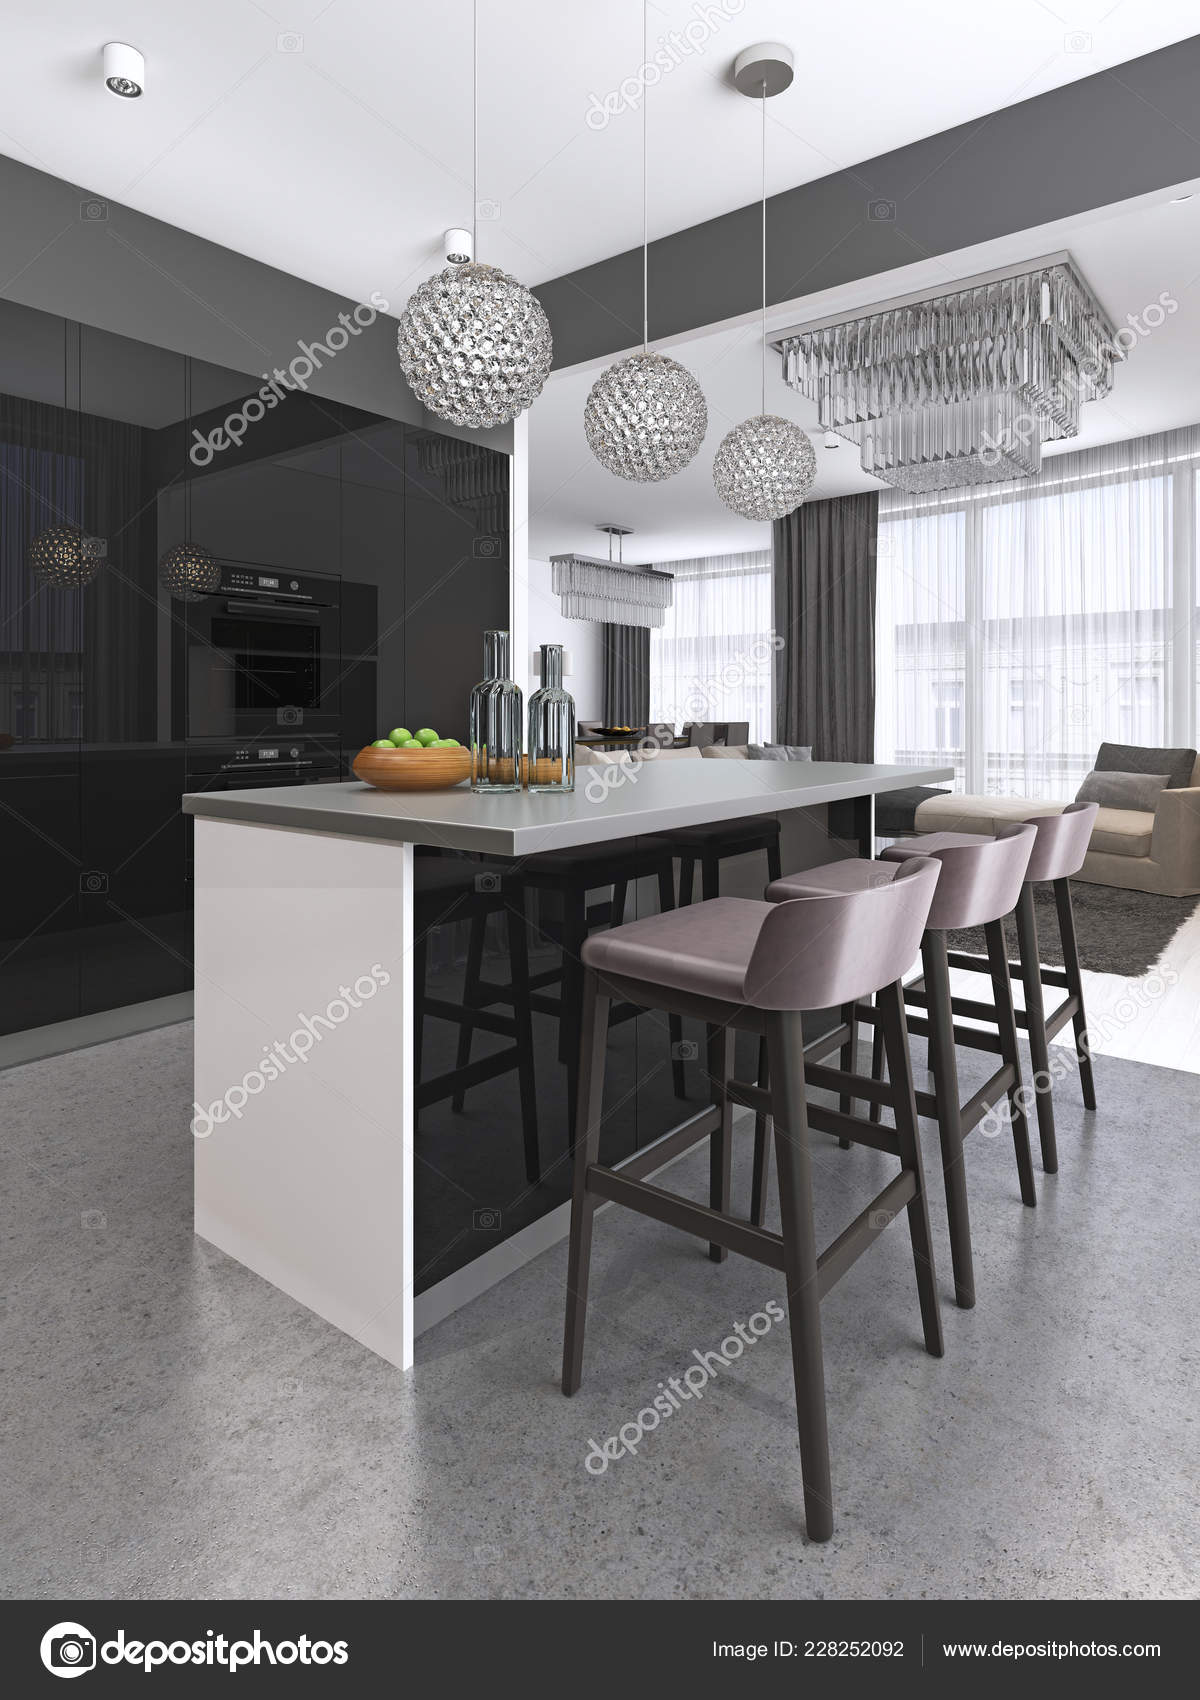 Stools Kitchen Islands Kitchen Island Three Bar Stools Glass Chandeliers Contemporary